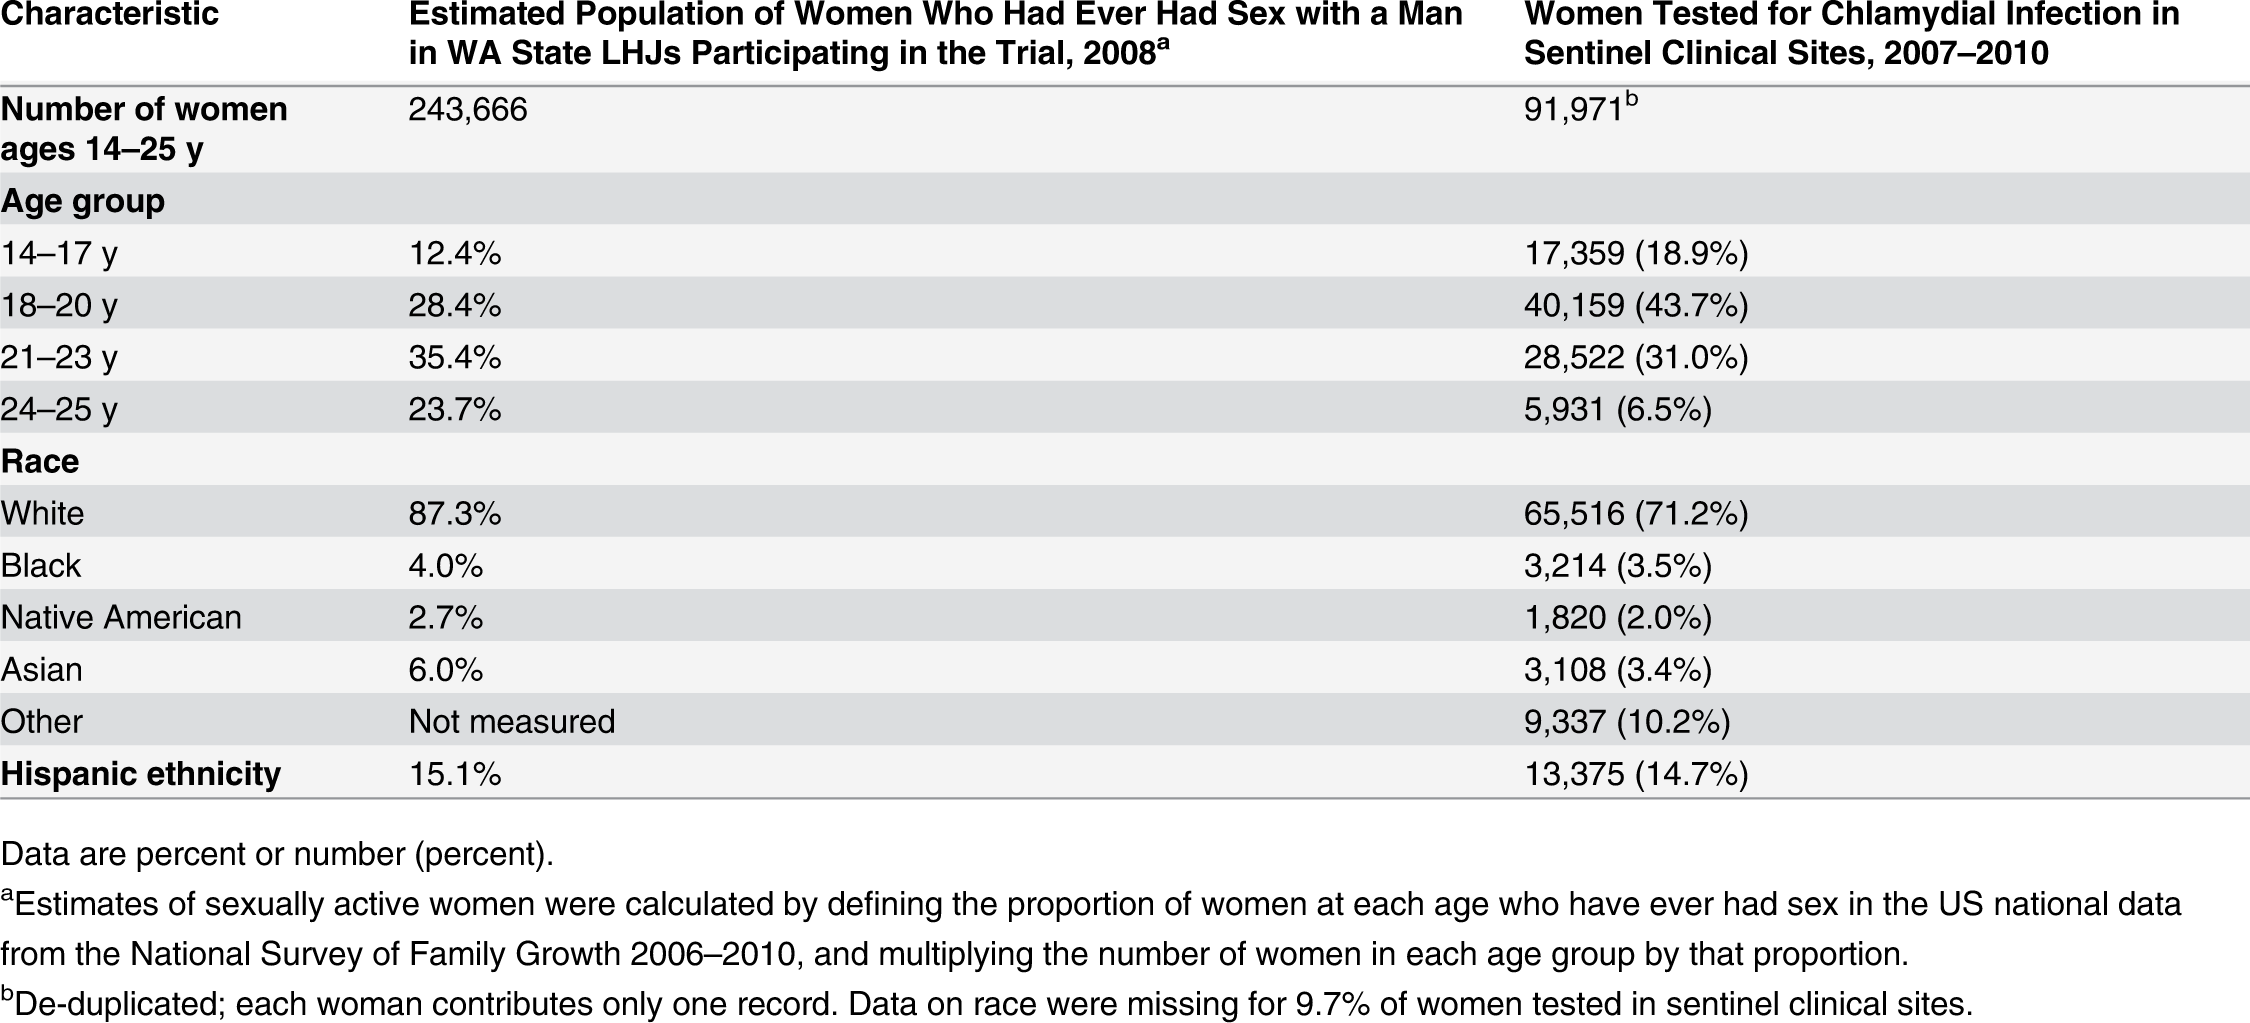 Characteristics of women tested for <i>C. trachomatis</i> in clinics providing outcome data for the trial compared to all women in areas of WA State participating in the trial.